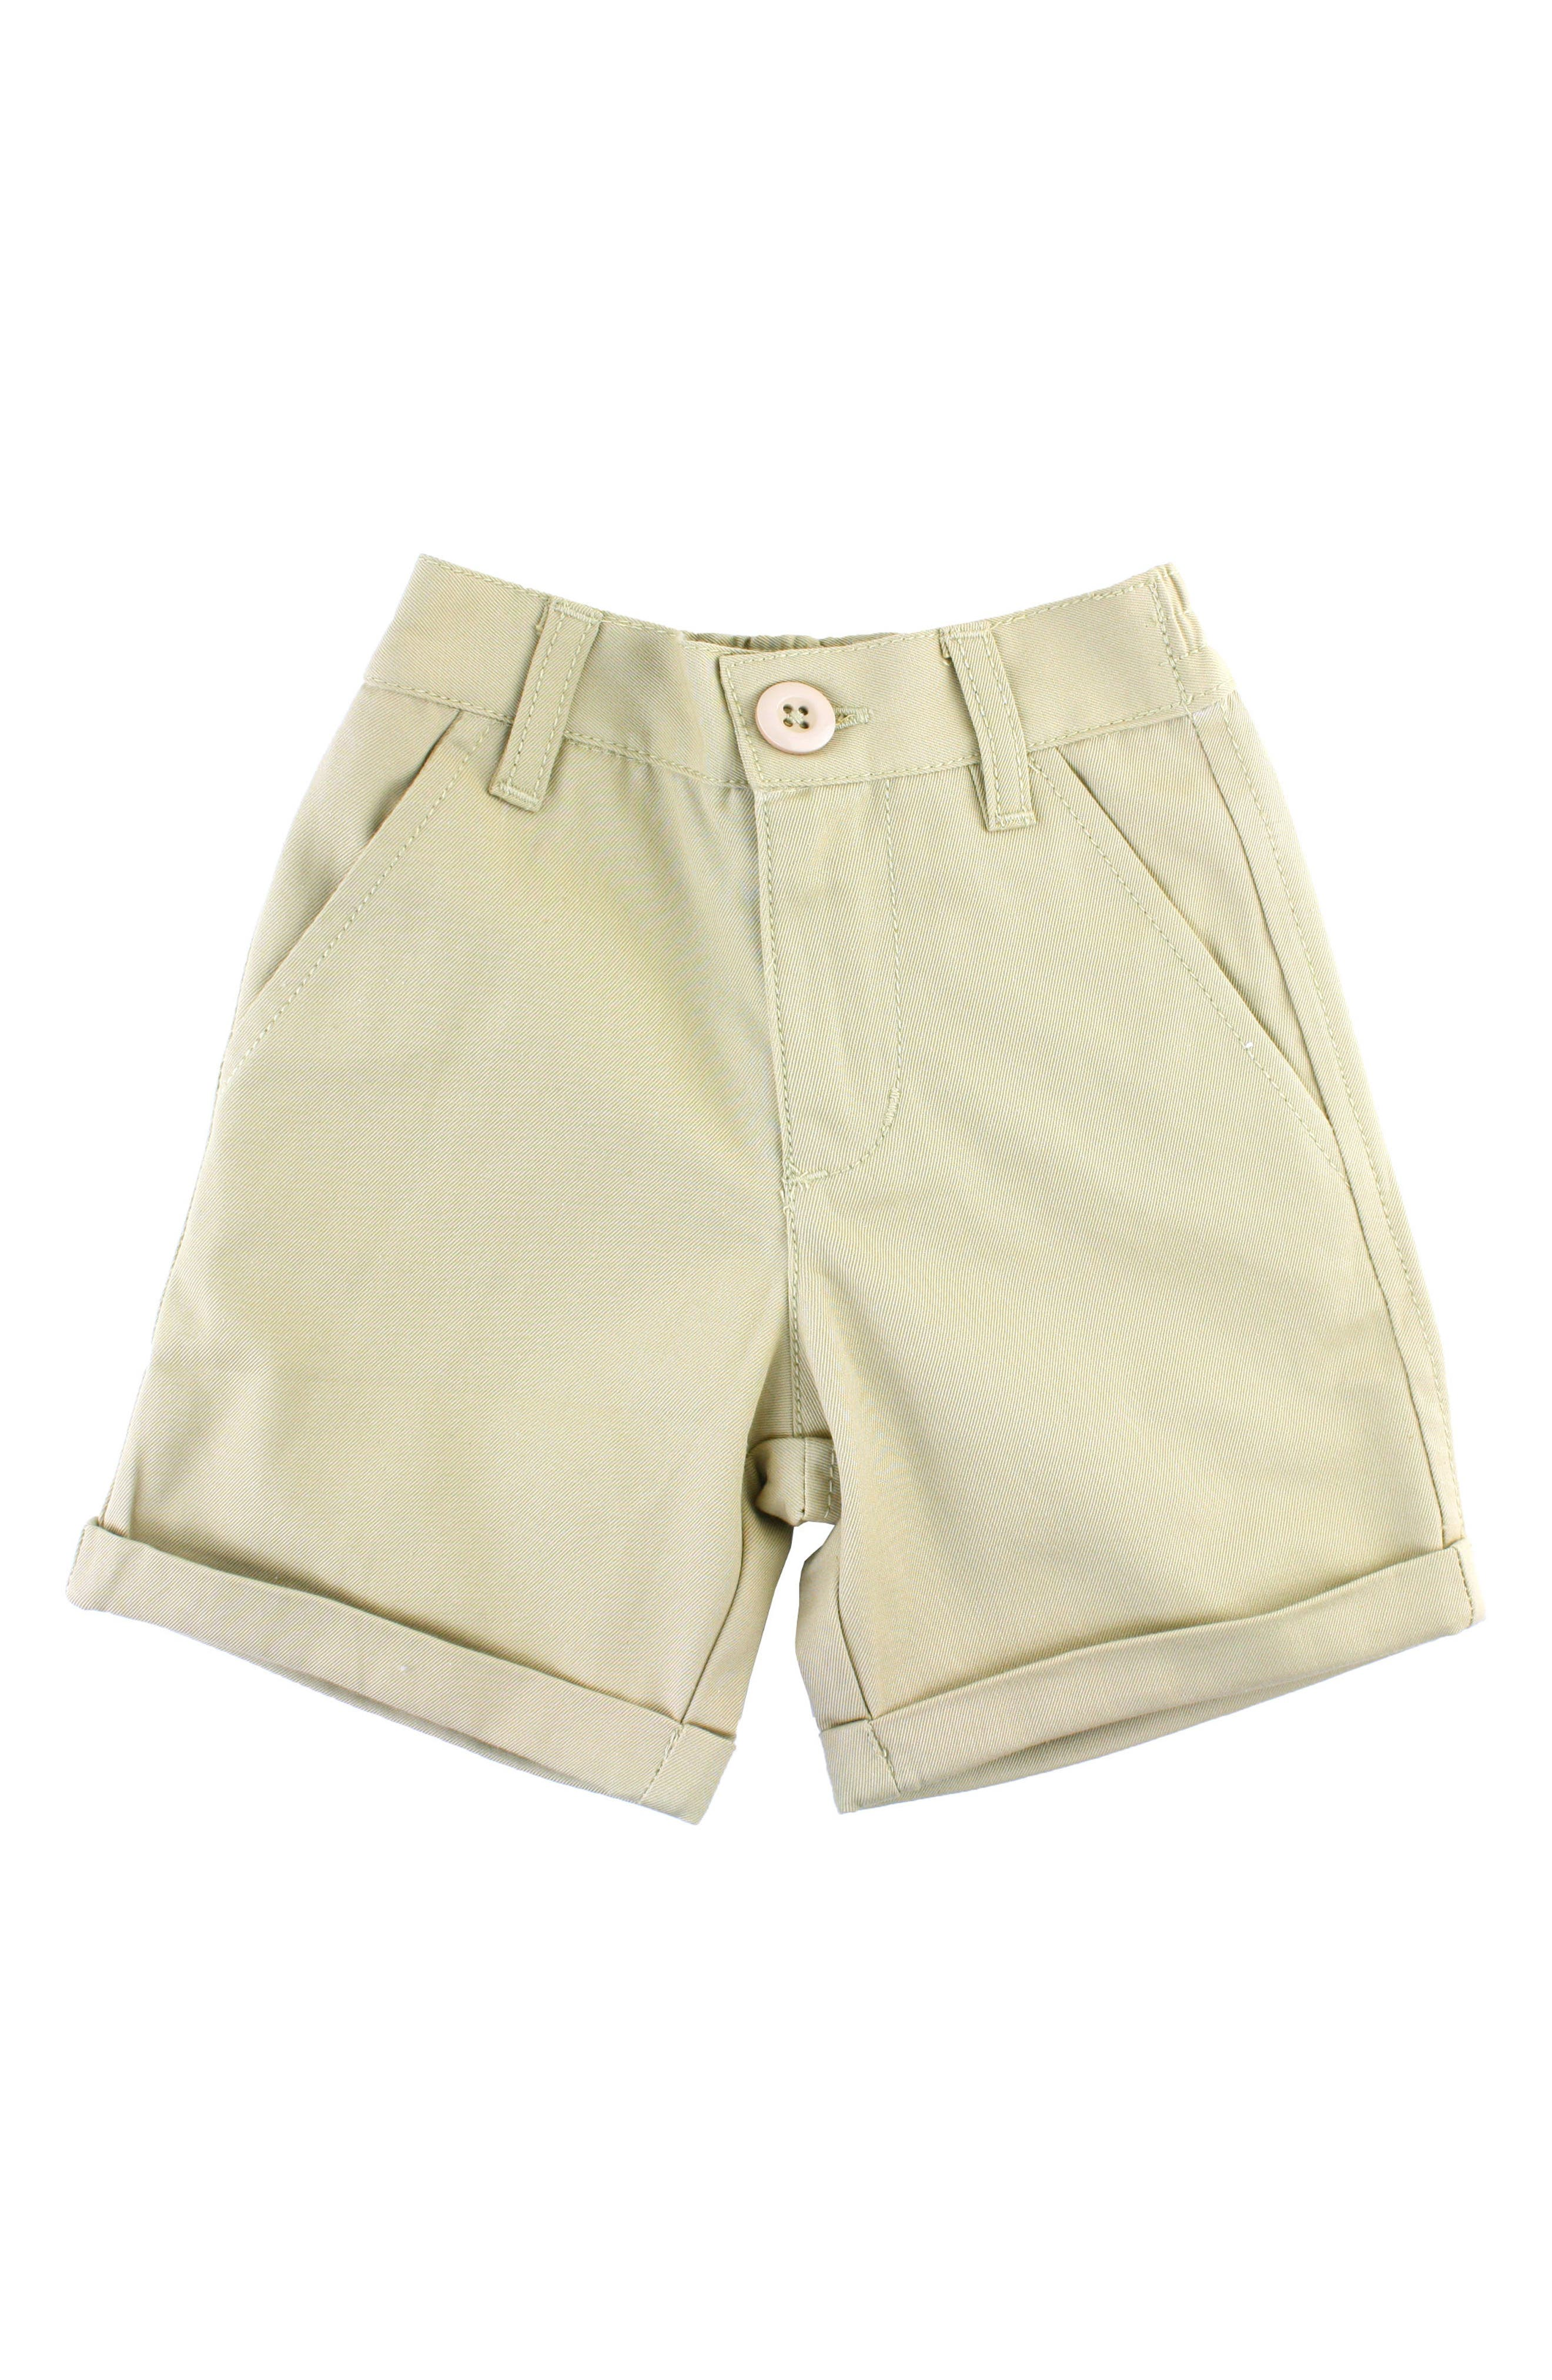 Chino Shorts,                             Main thumbnail 1, color,                             250